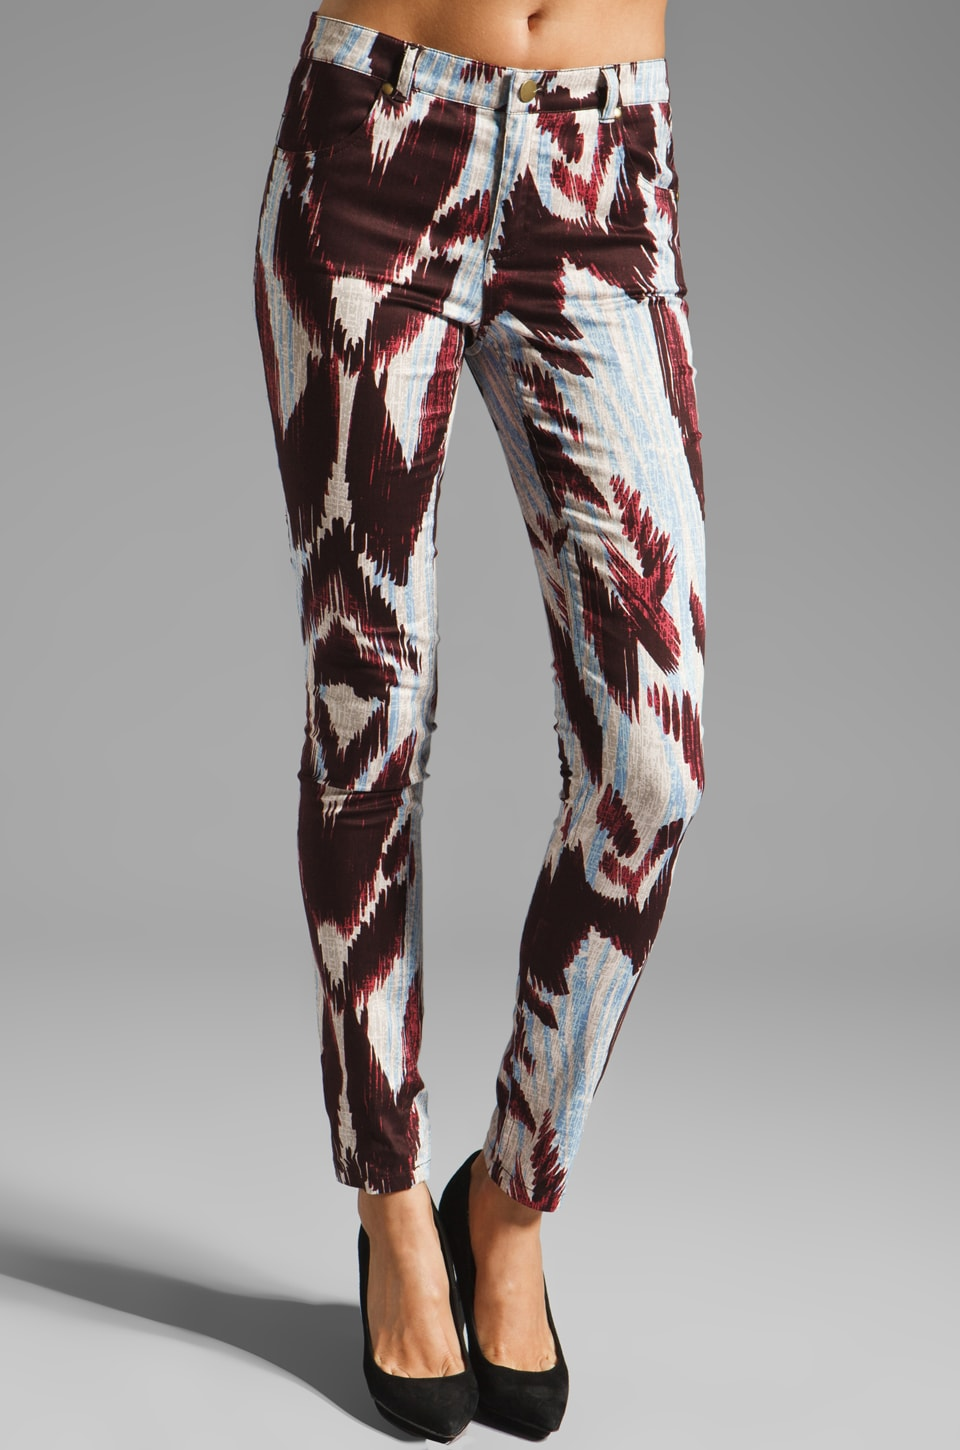 Shona Joy Natural Wonder Printed Pant in Raisin/Sky